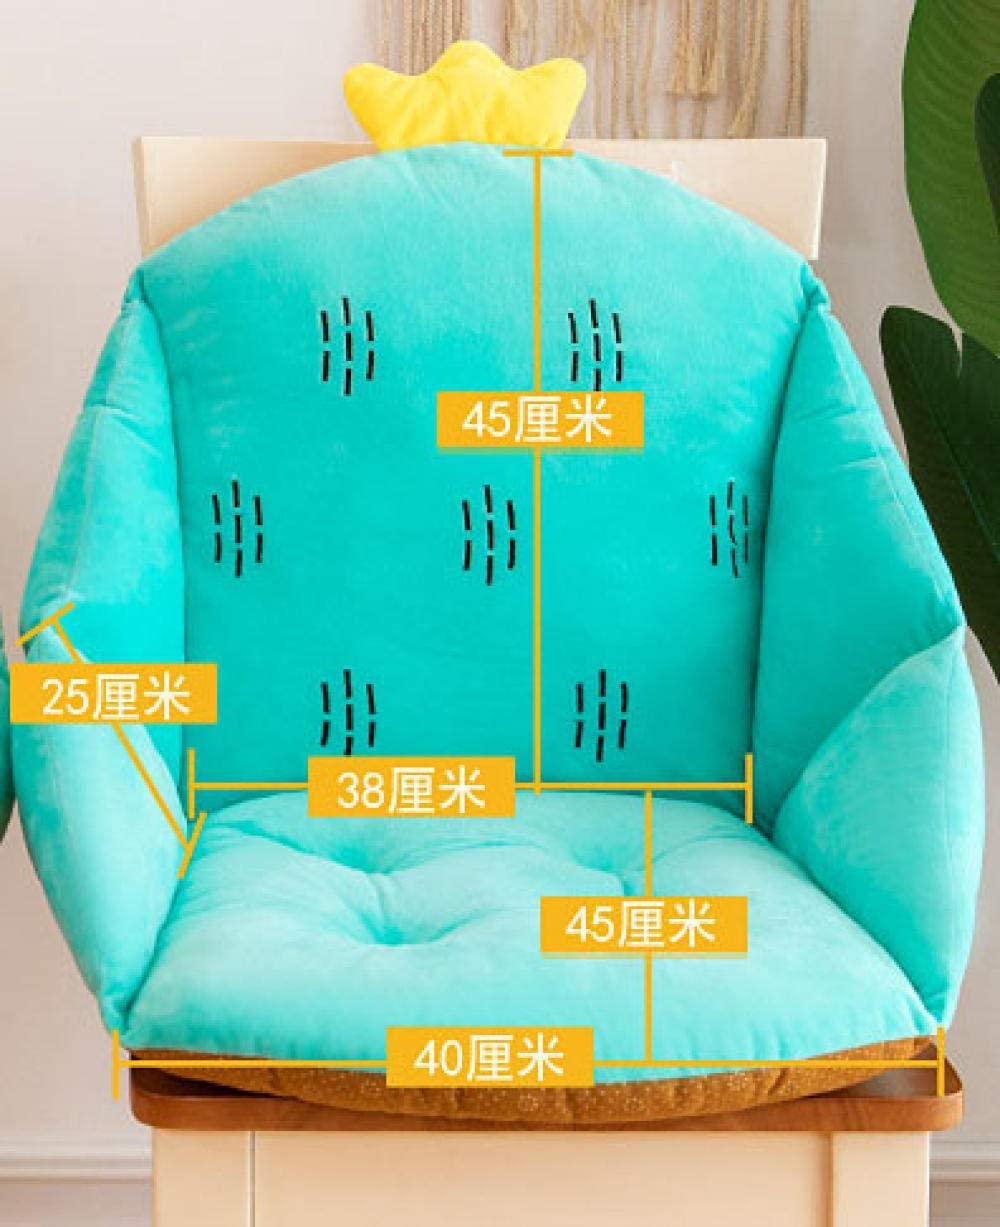 JIAHENGY Kids Sofas Children's Sofa Bed Baby's,Office bag hip sofa, plush toy cartoon cushion, child seat with one seat-5 3